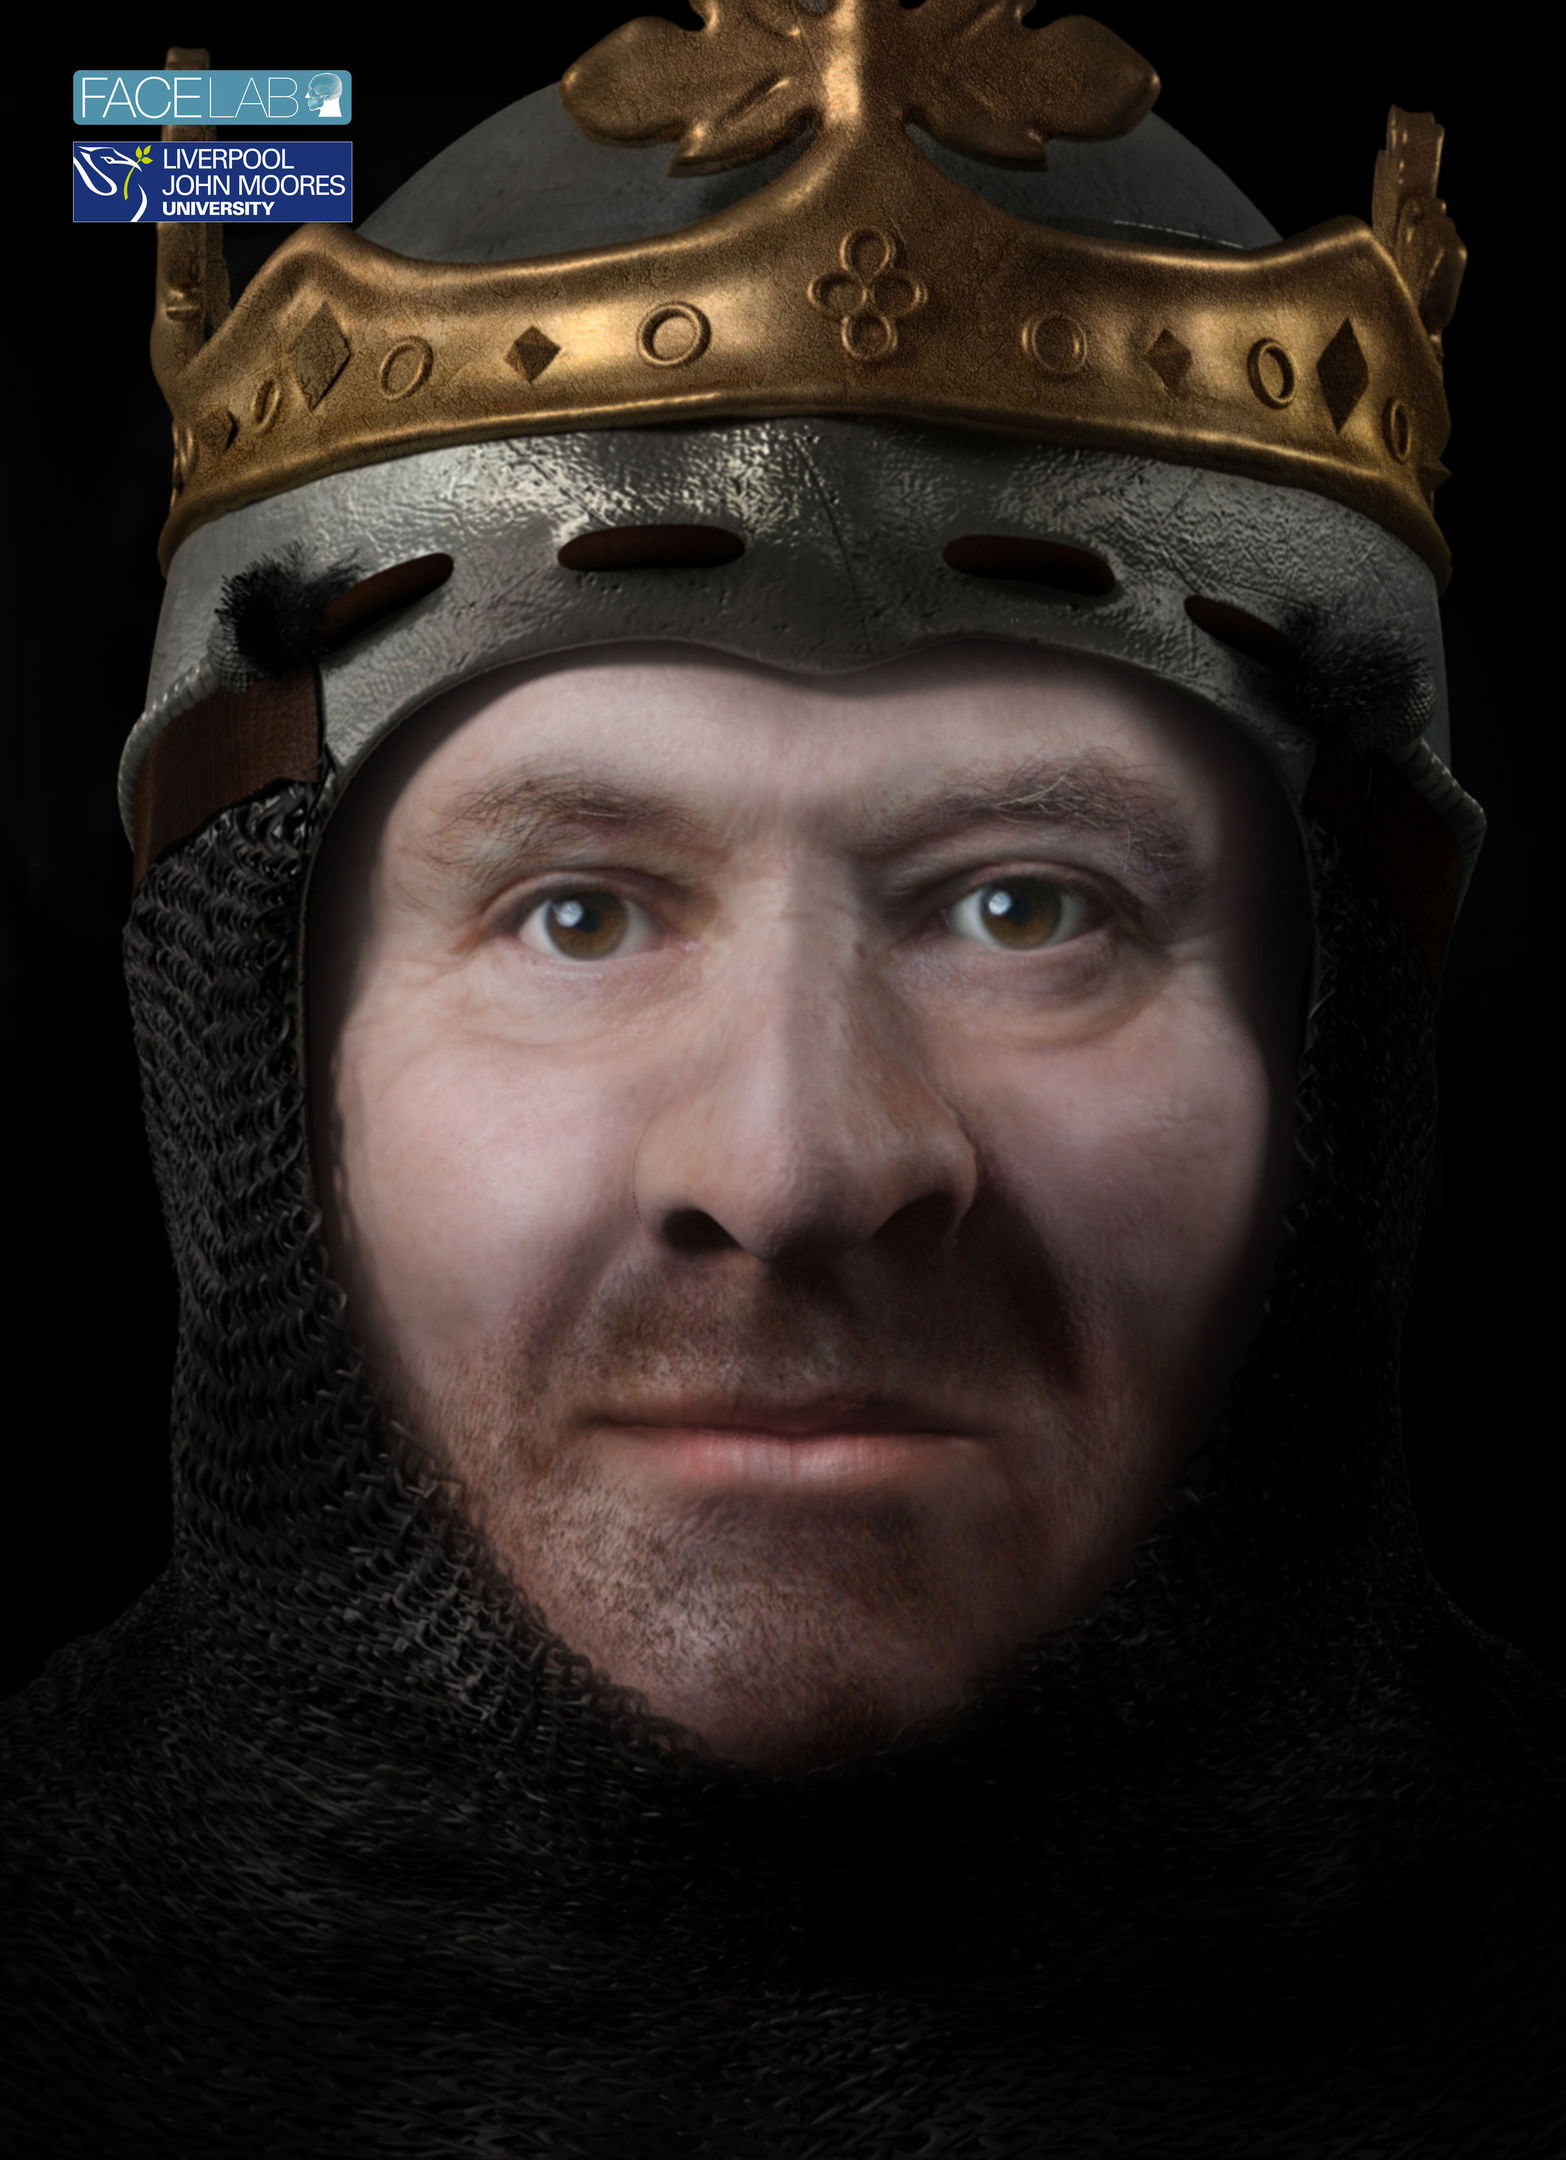 A virtual image of what could be the head of Robert the Bruce.